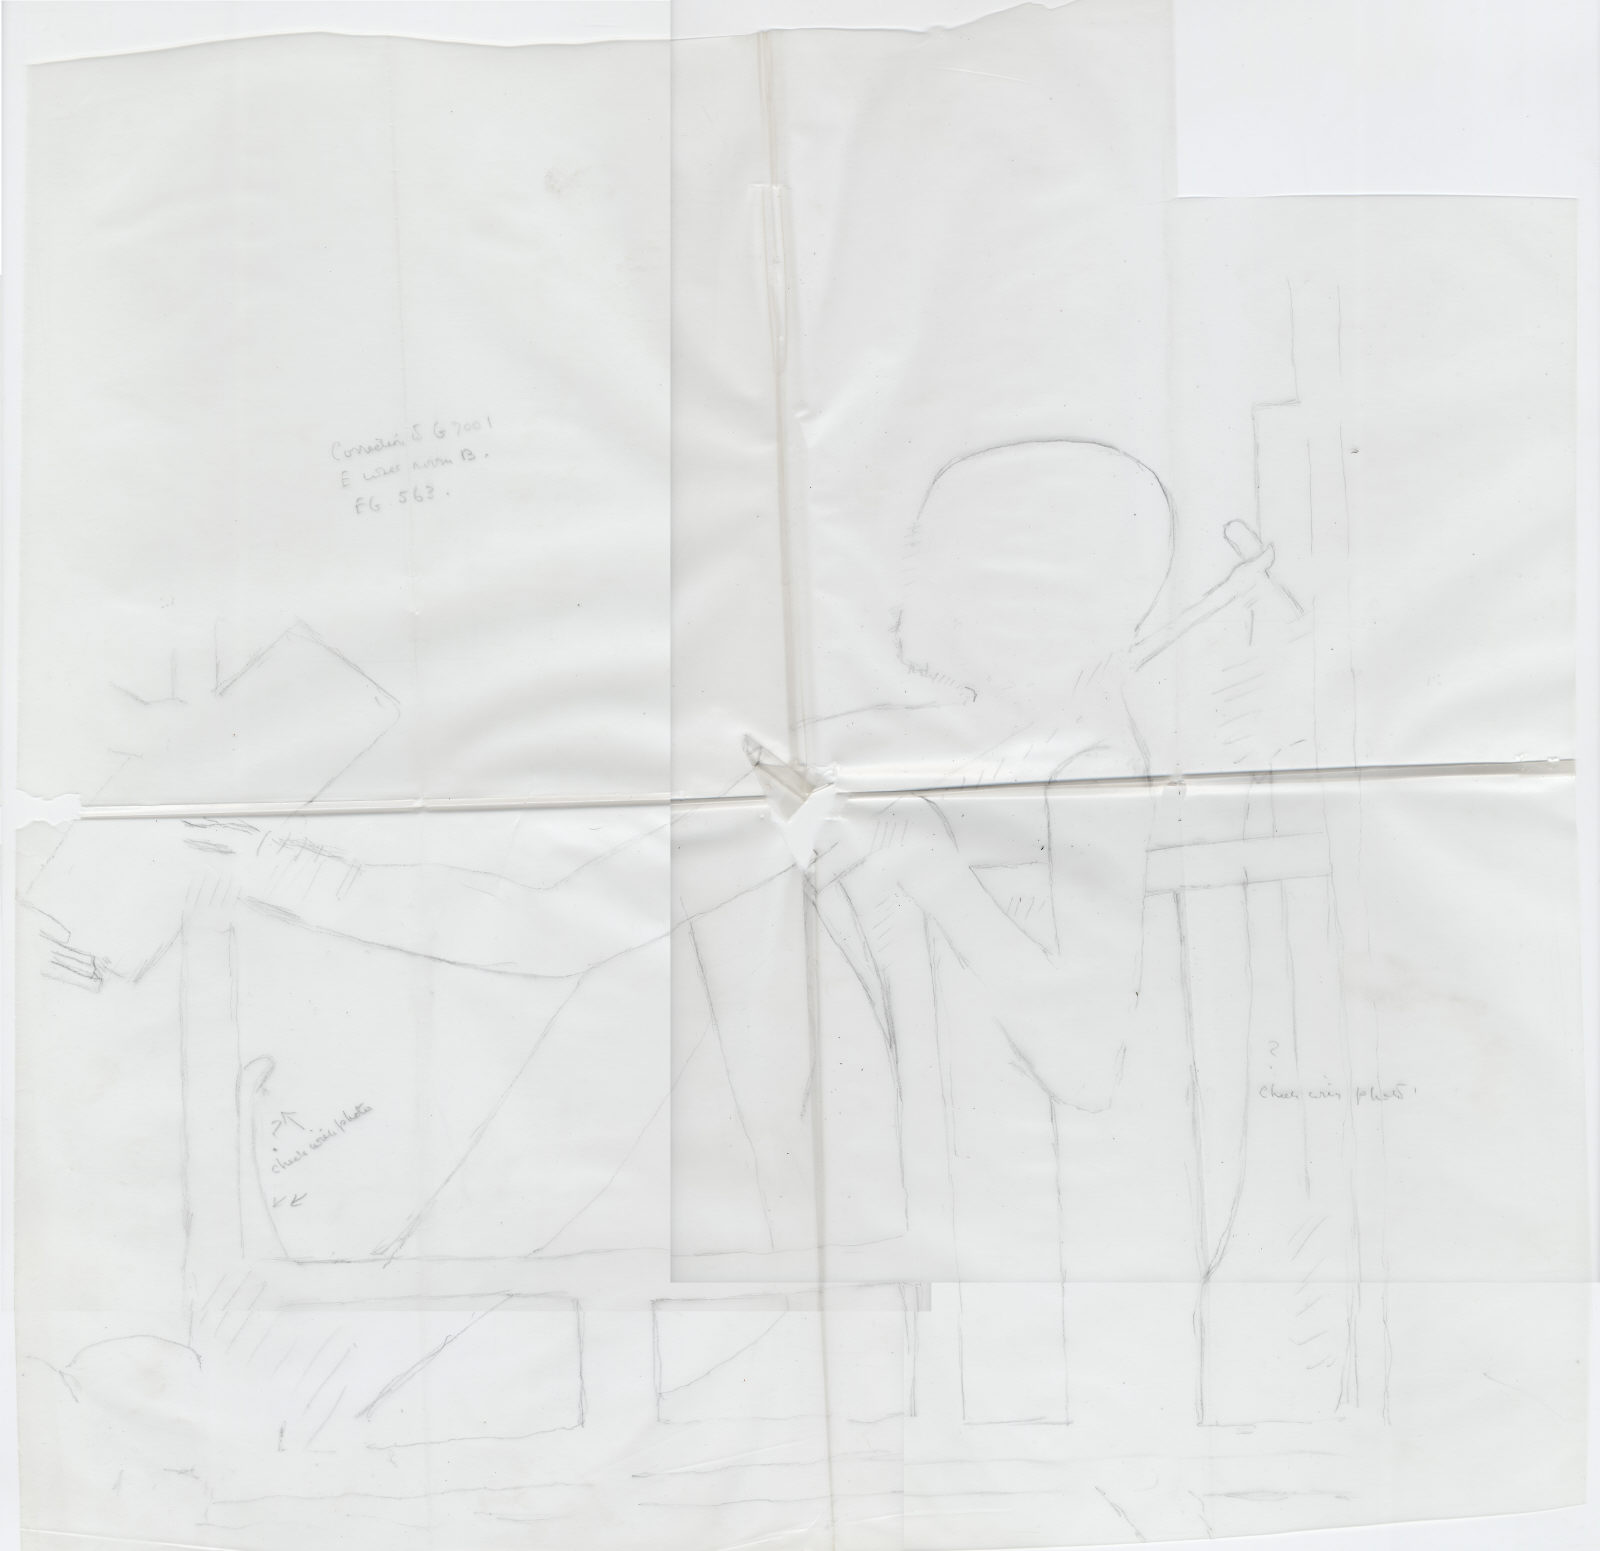 Drawings: G 7101: relief from inner room (room D), E wall, correction